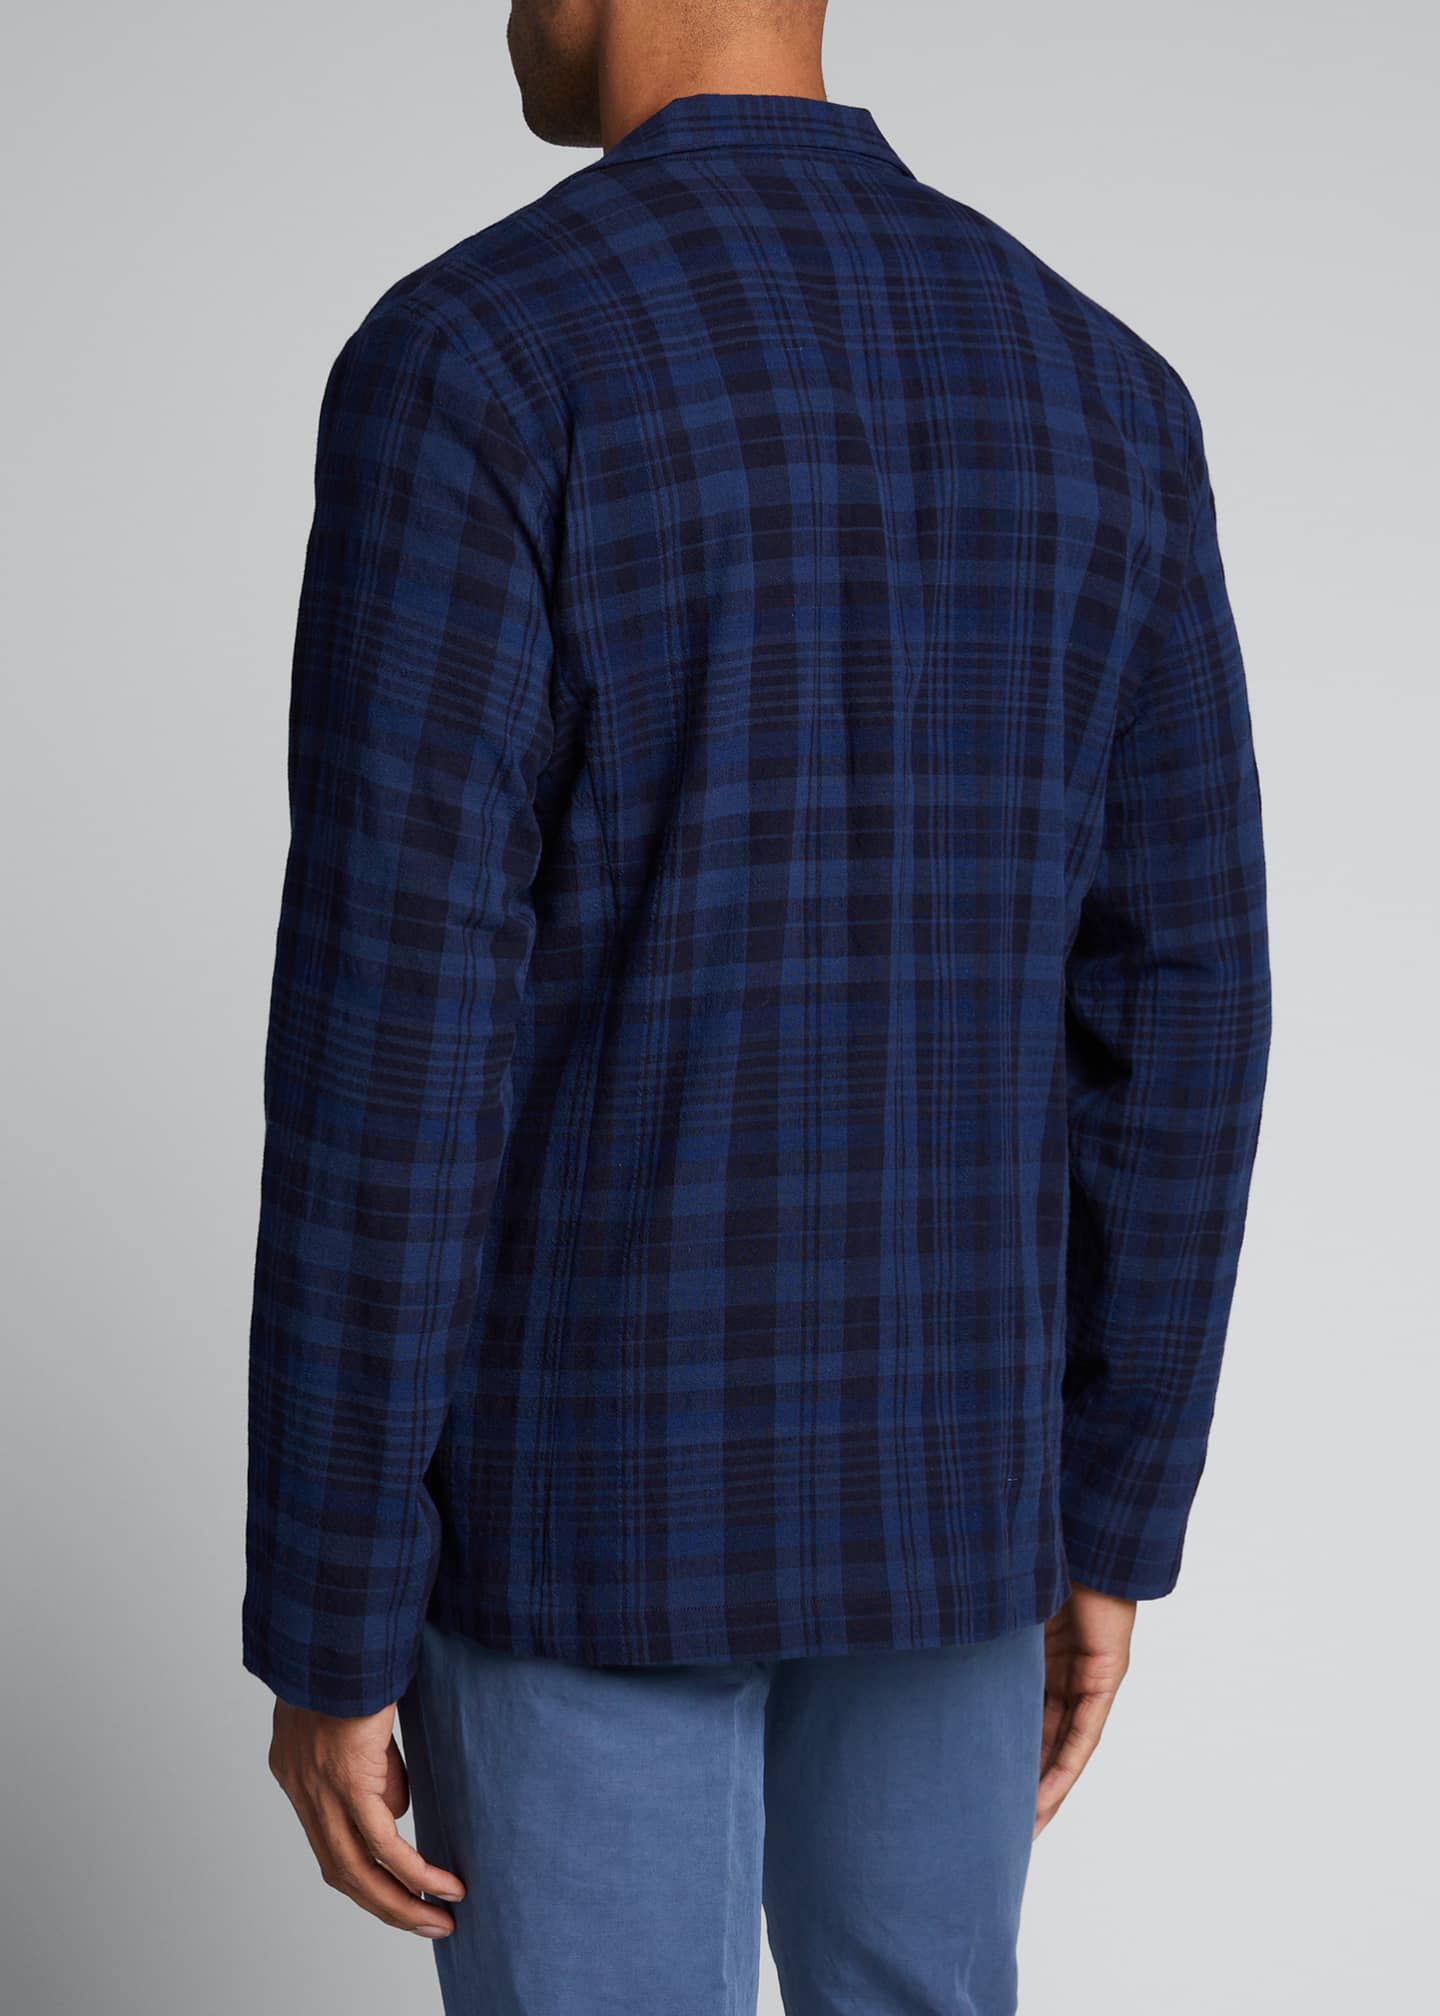 Image 2 of 5: Men's Unconstructed Plaid Two-Button Sport Jacket